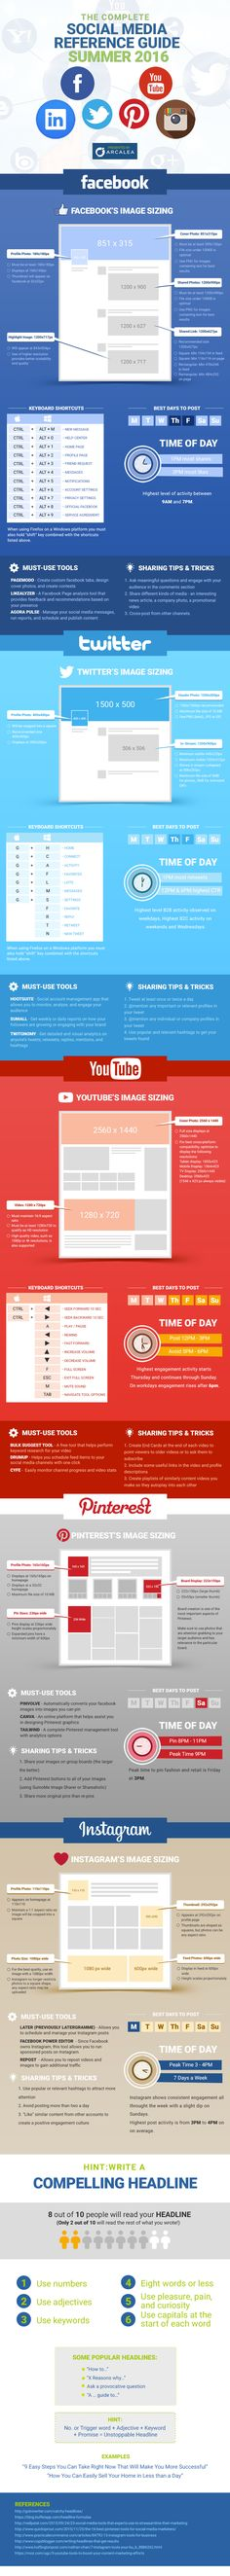 A Beginners Guide to Social Media: Image Sizes, Times to Post & More [Infographic] - @redwebdesign